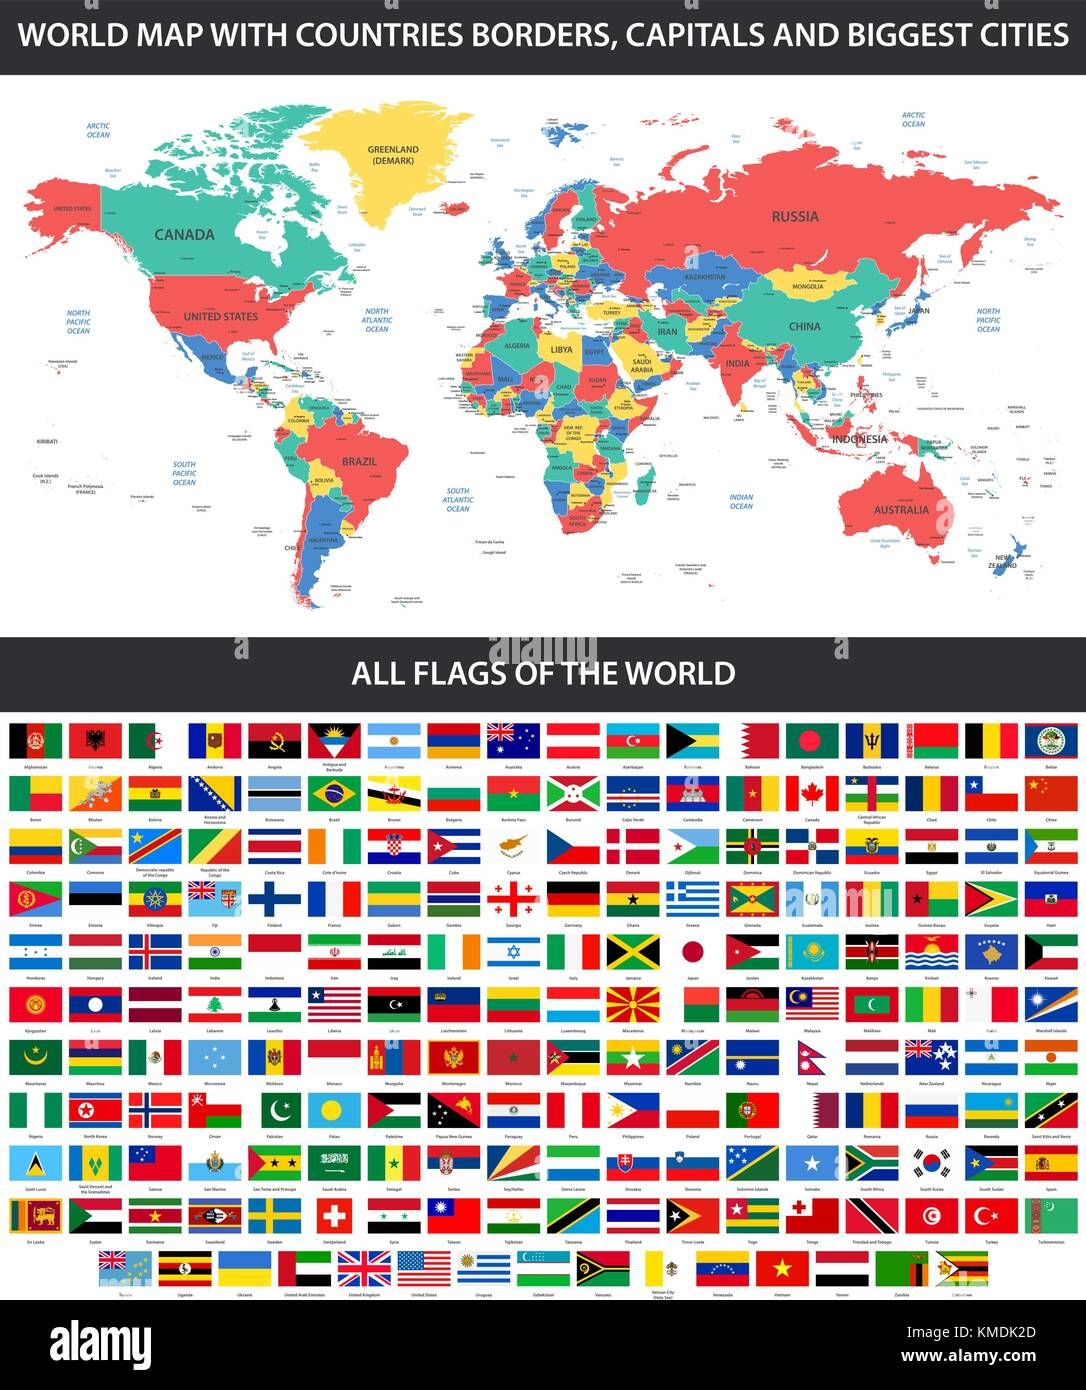 All flags of the world in alphabetical order and detailed world all flags of the world in alphabetical order and detailed world map with borders countries large cities gumiabroncs Choice Image